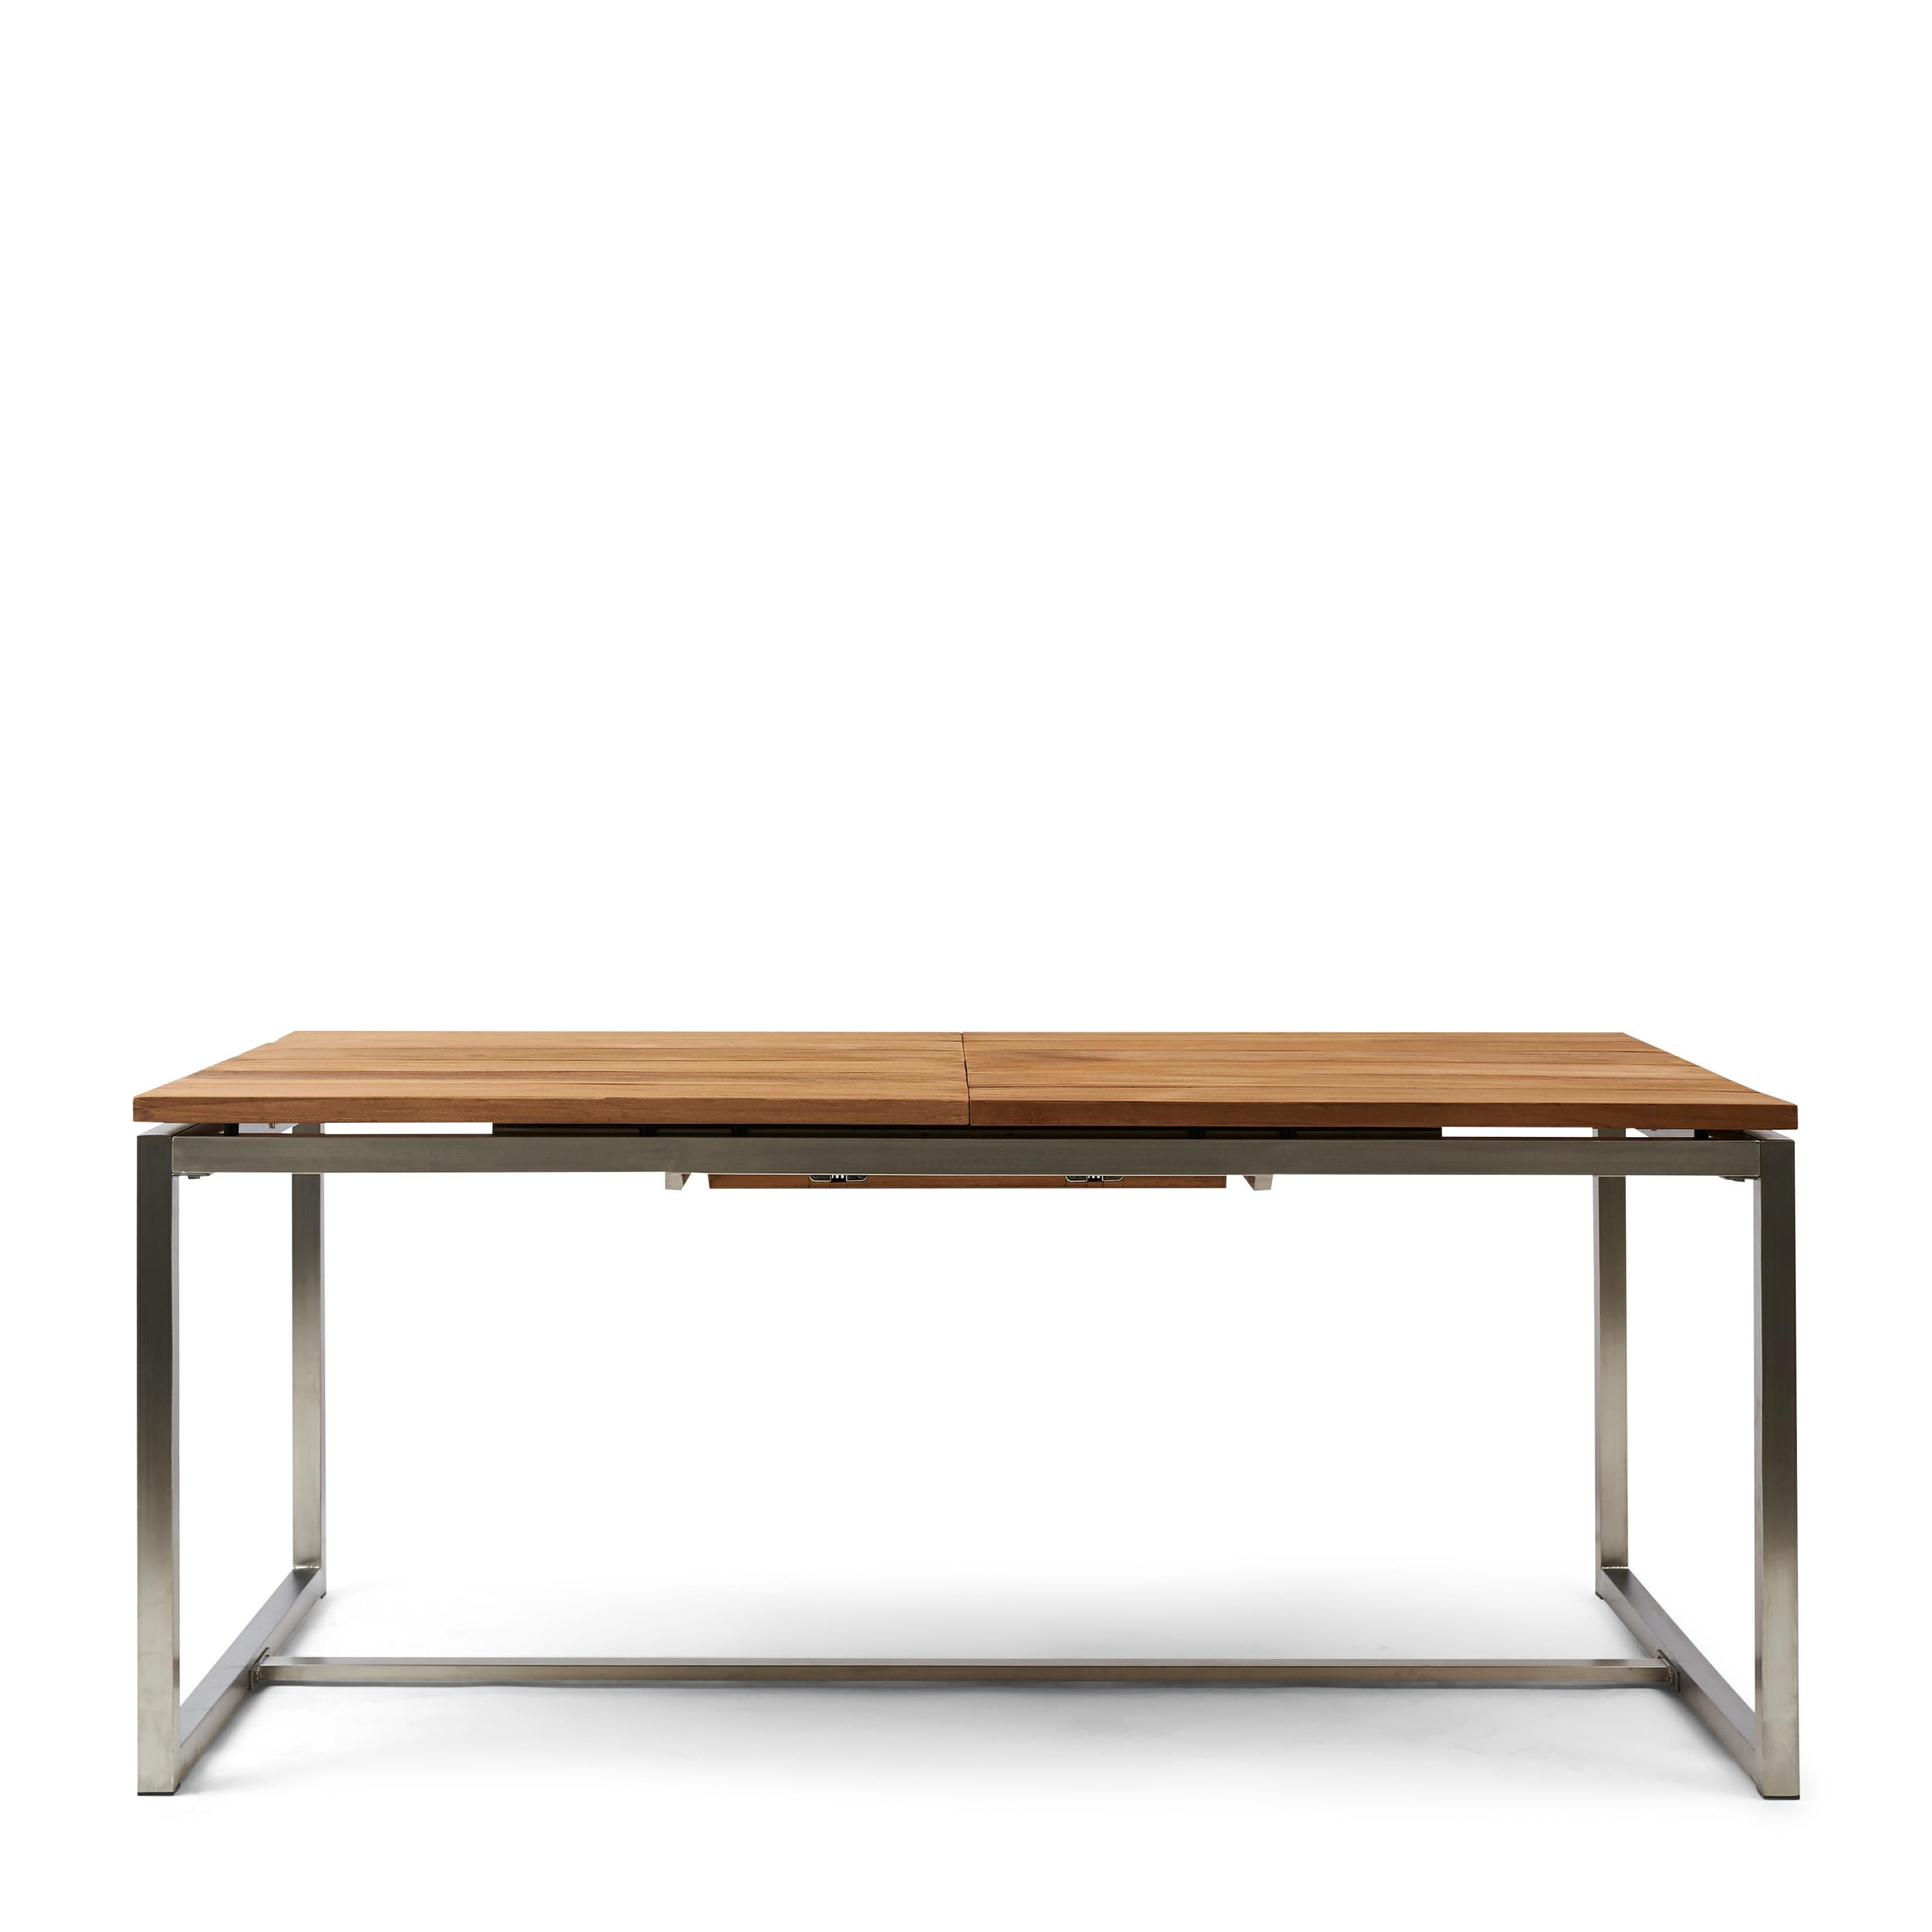 Sydney Harbour Outdoor Table 100X180/240 / Rivièra Maison